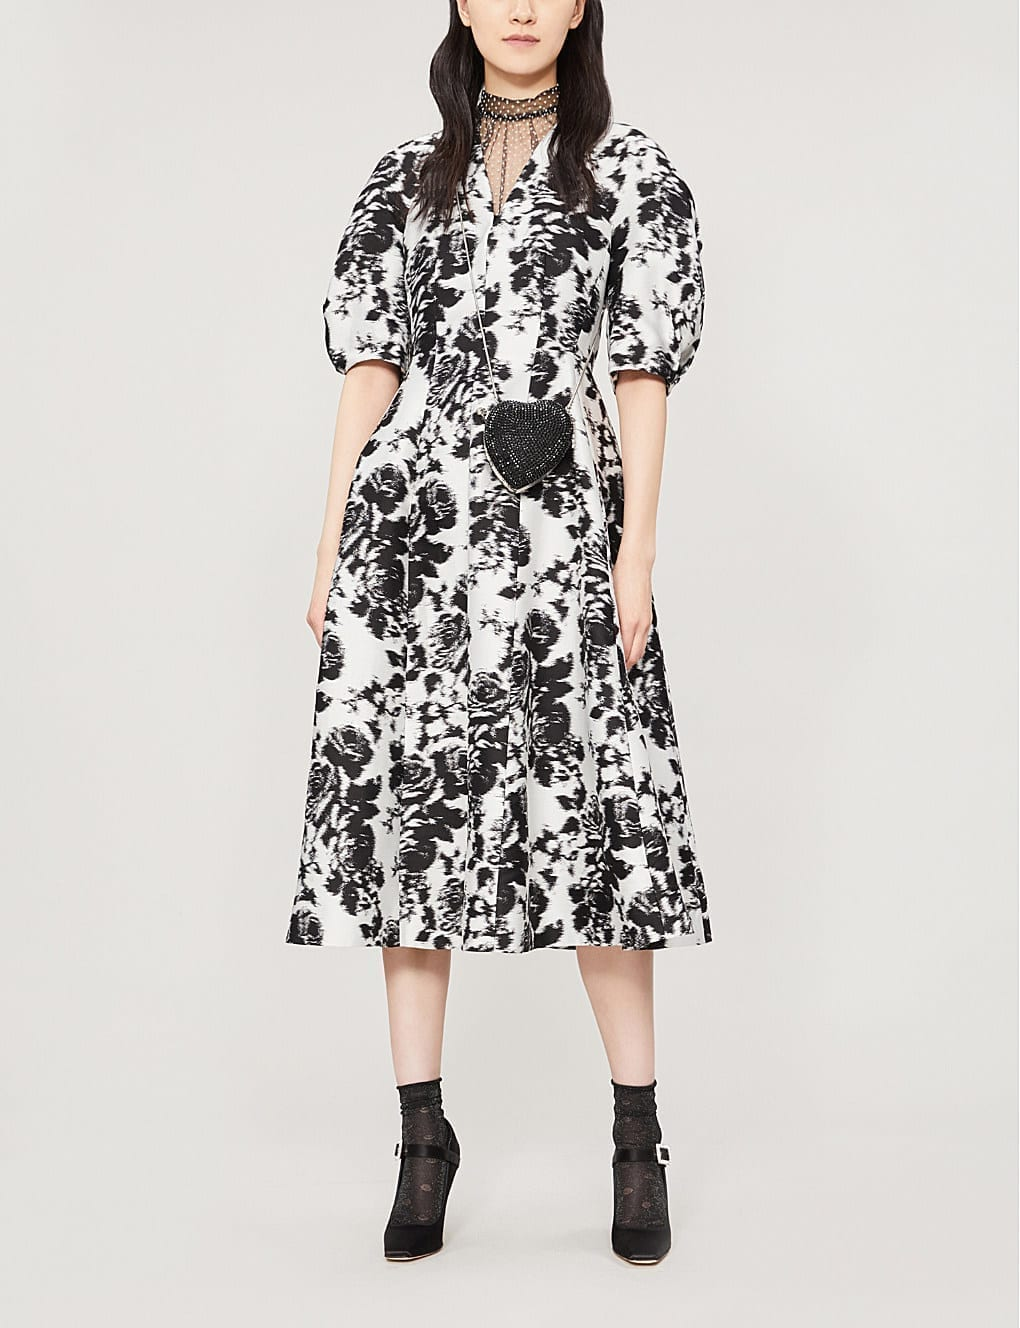 8b8b45cb34af ERDEM Cressilda floral-Print Cotton and Silk-Blend Midi White Black Dress